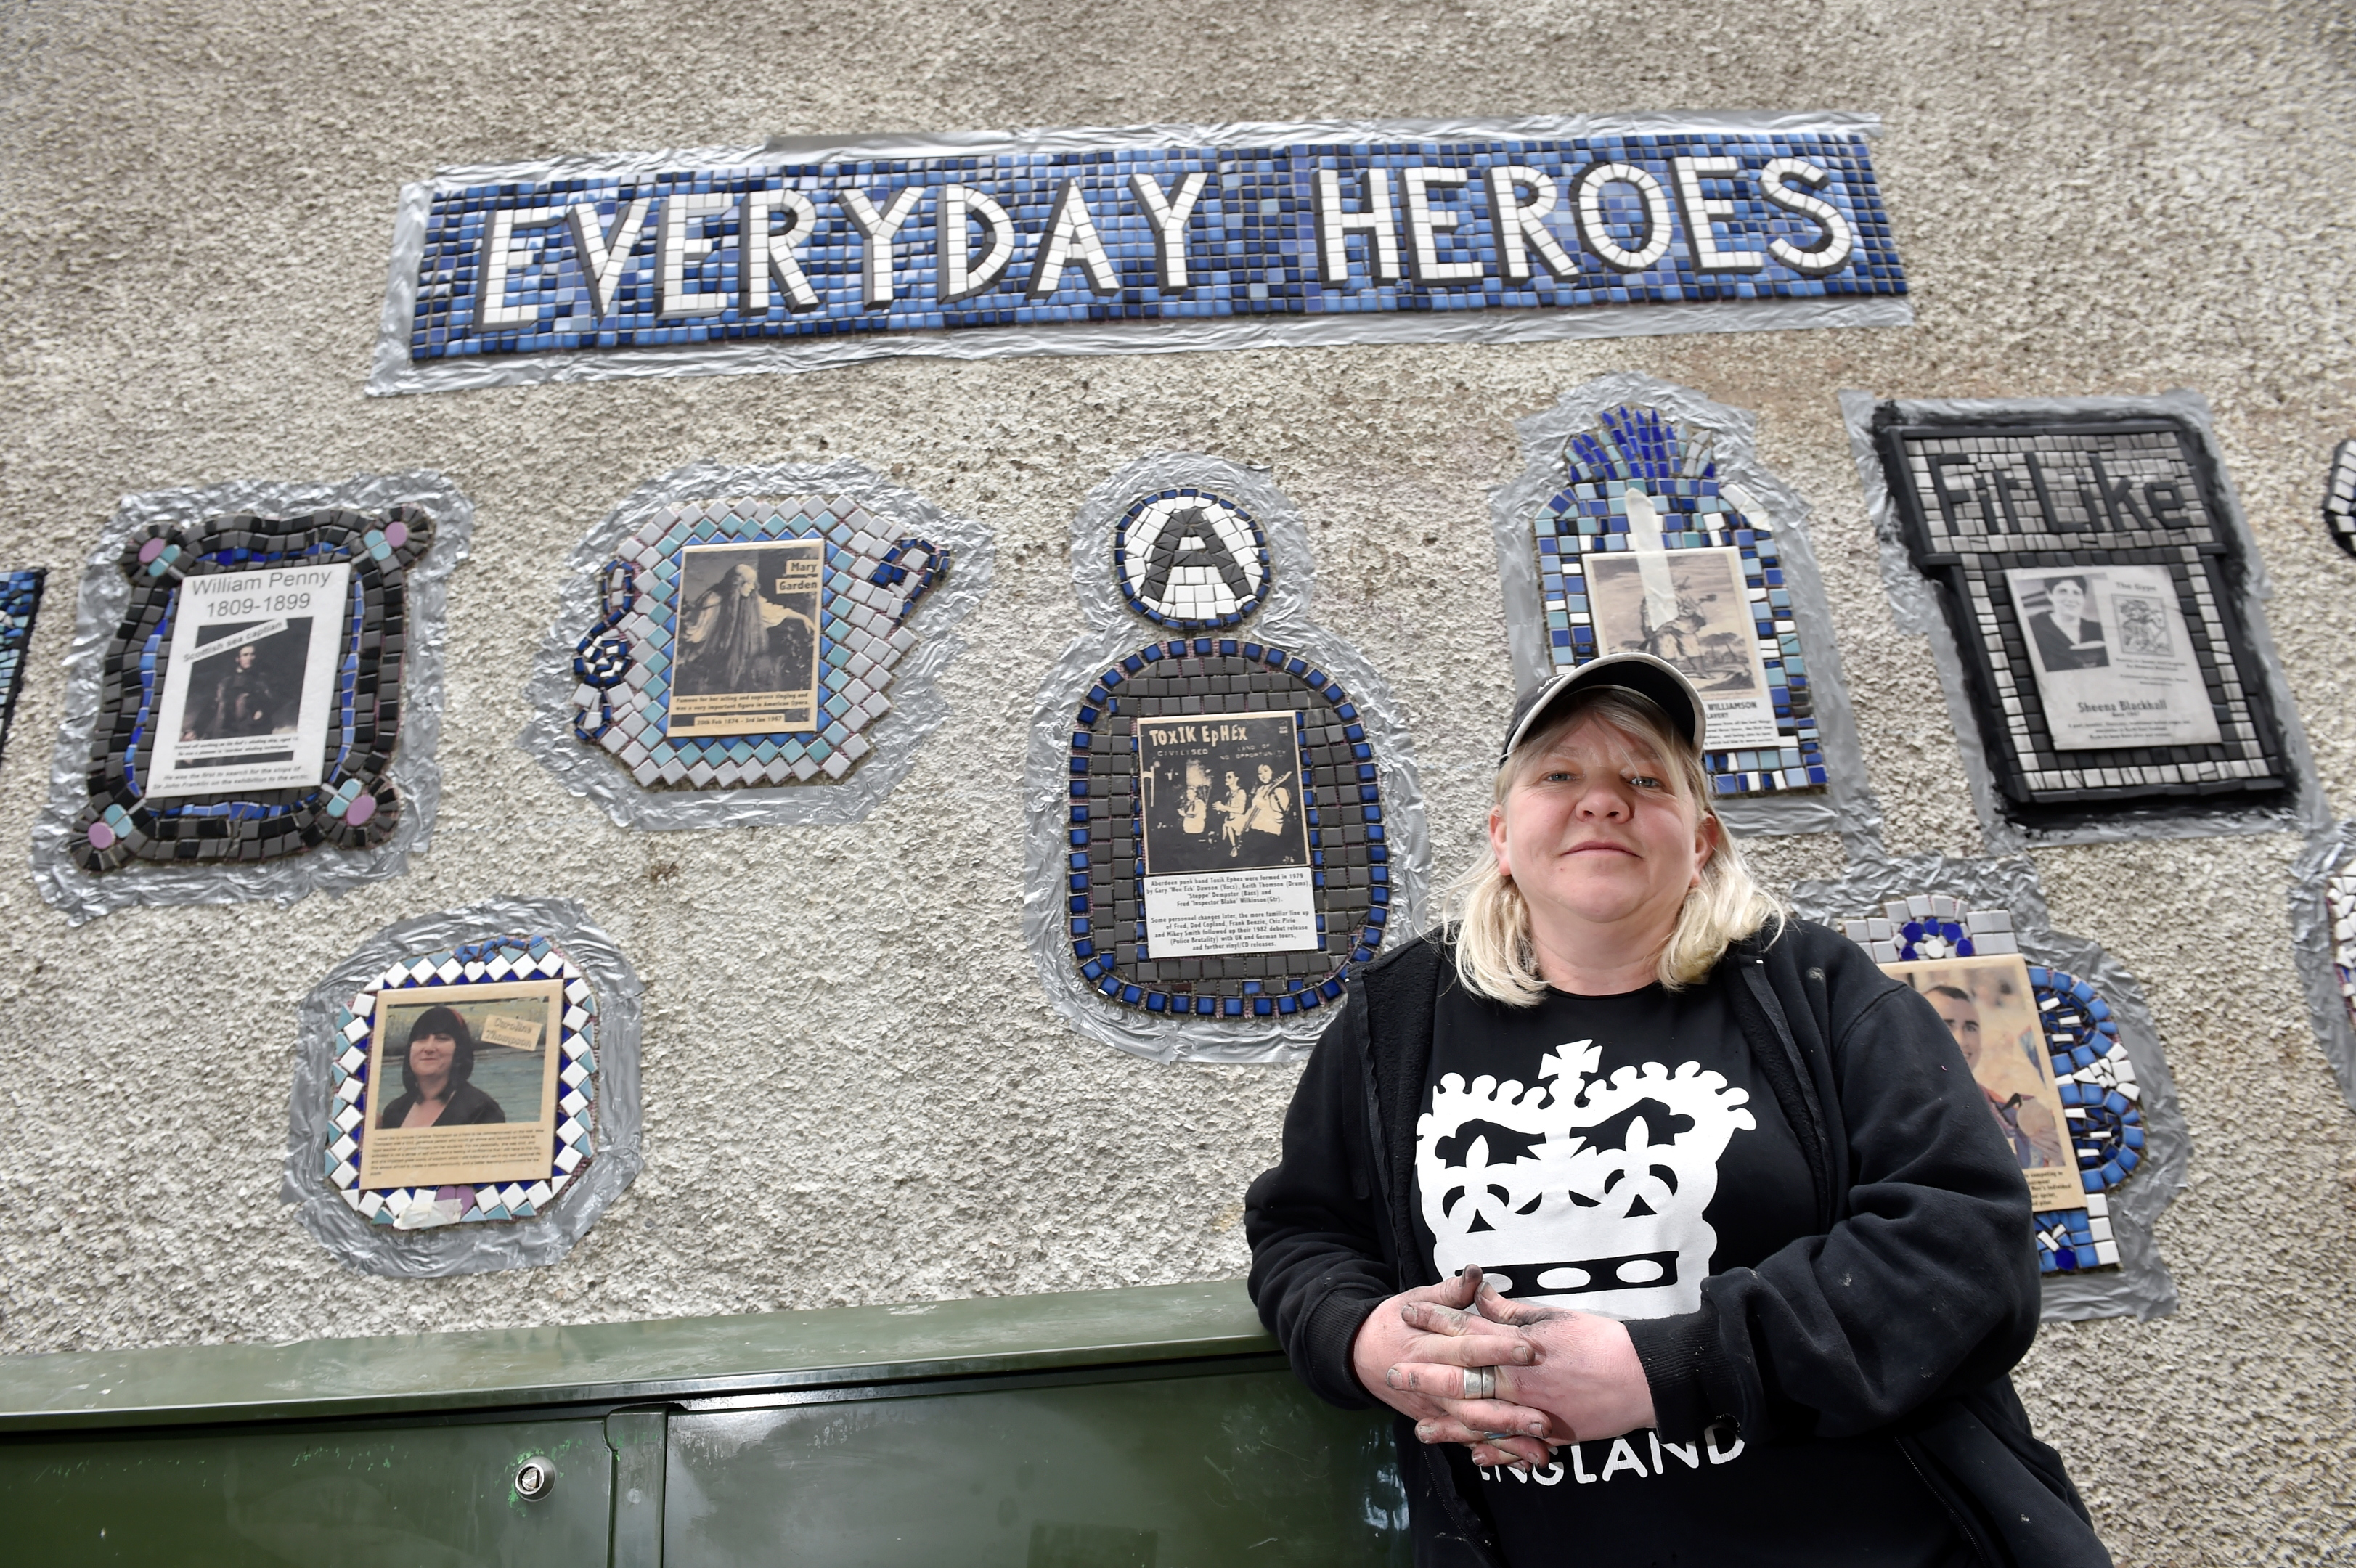 Nuart Aberdeen - A community mural highlights unsung heroes from Aberdeen's past and present to honour through a piece of ceramic art, developed by festival artist Carrie Reichardt and young people from Aberdeen unveiled at Rennie's Wynd. Picture of Carrie Reichardt.